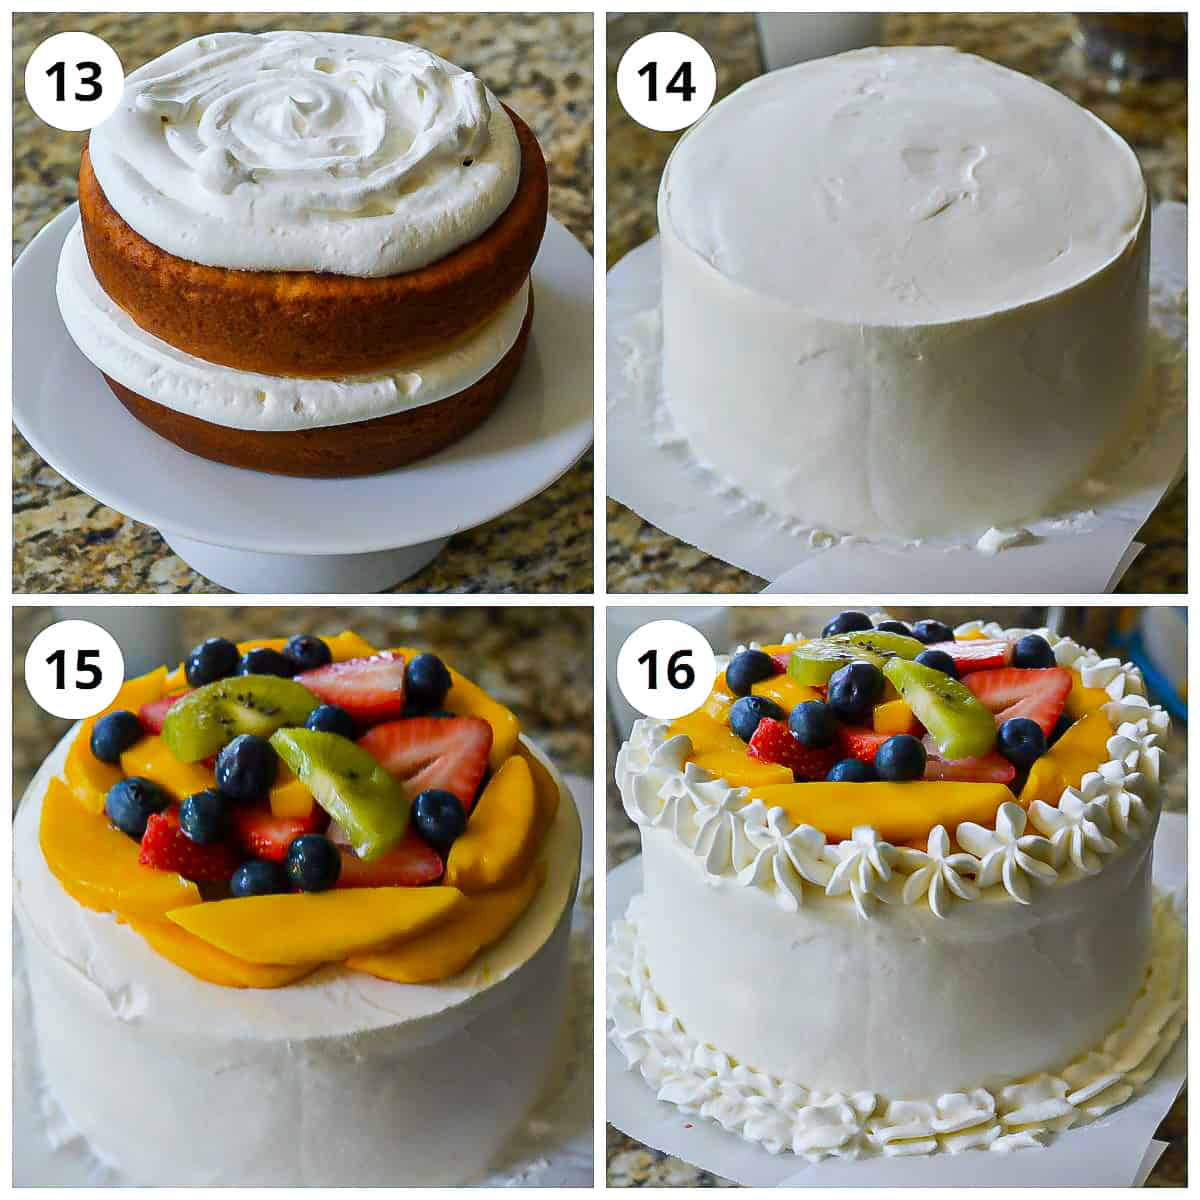 Steps for layering the vanilla cake with whipped cream frosting and fresh fruits